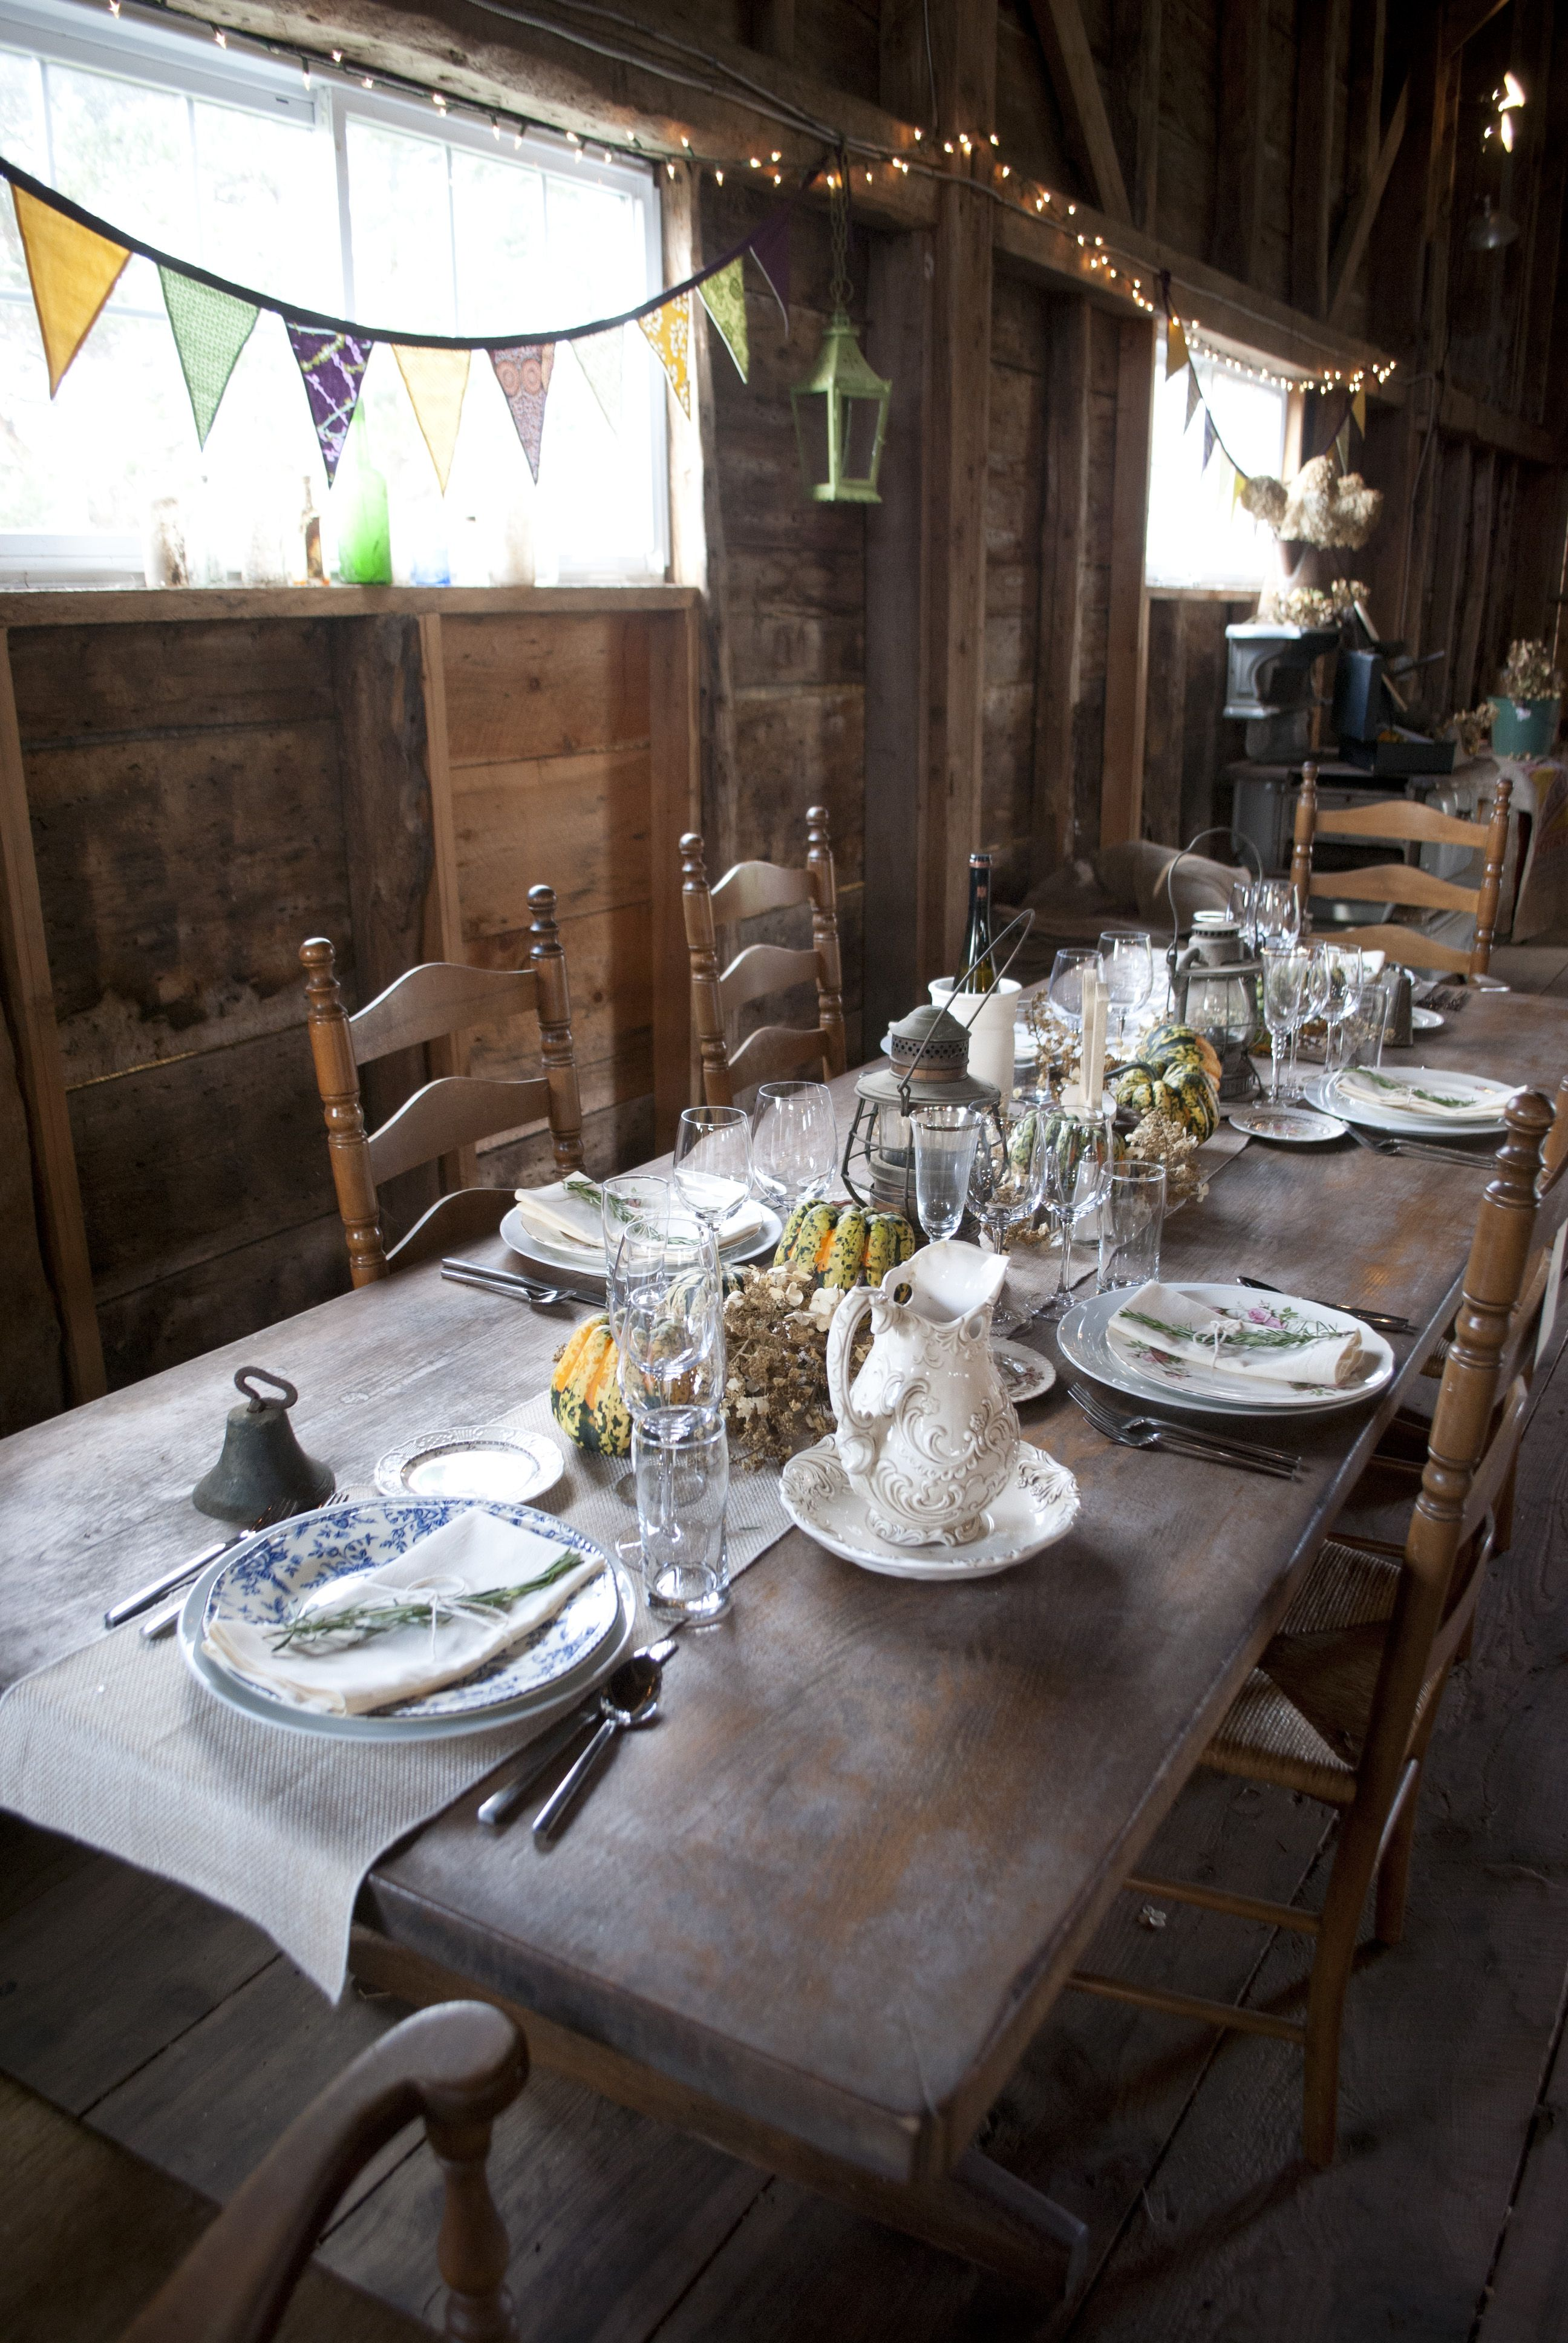 The 200yearold Maine barn decorated for a rustic wedding